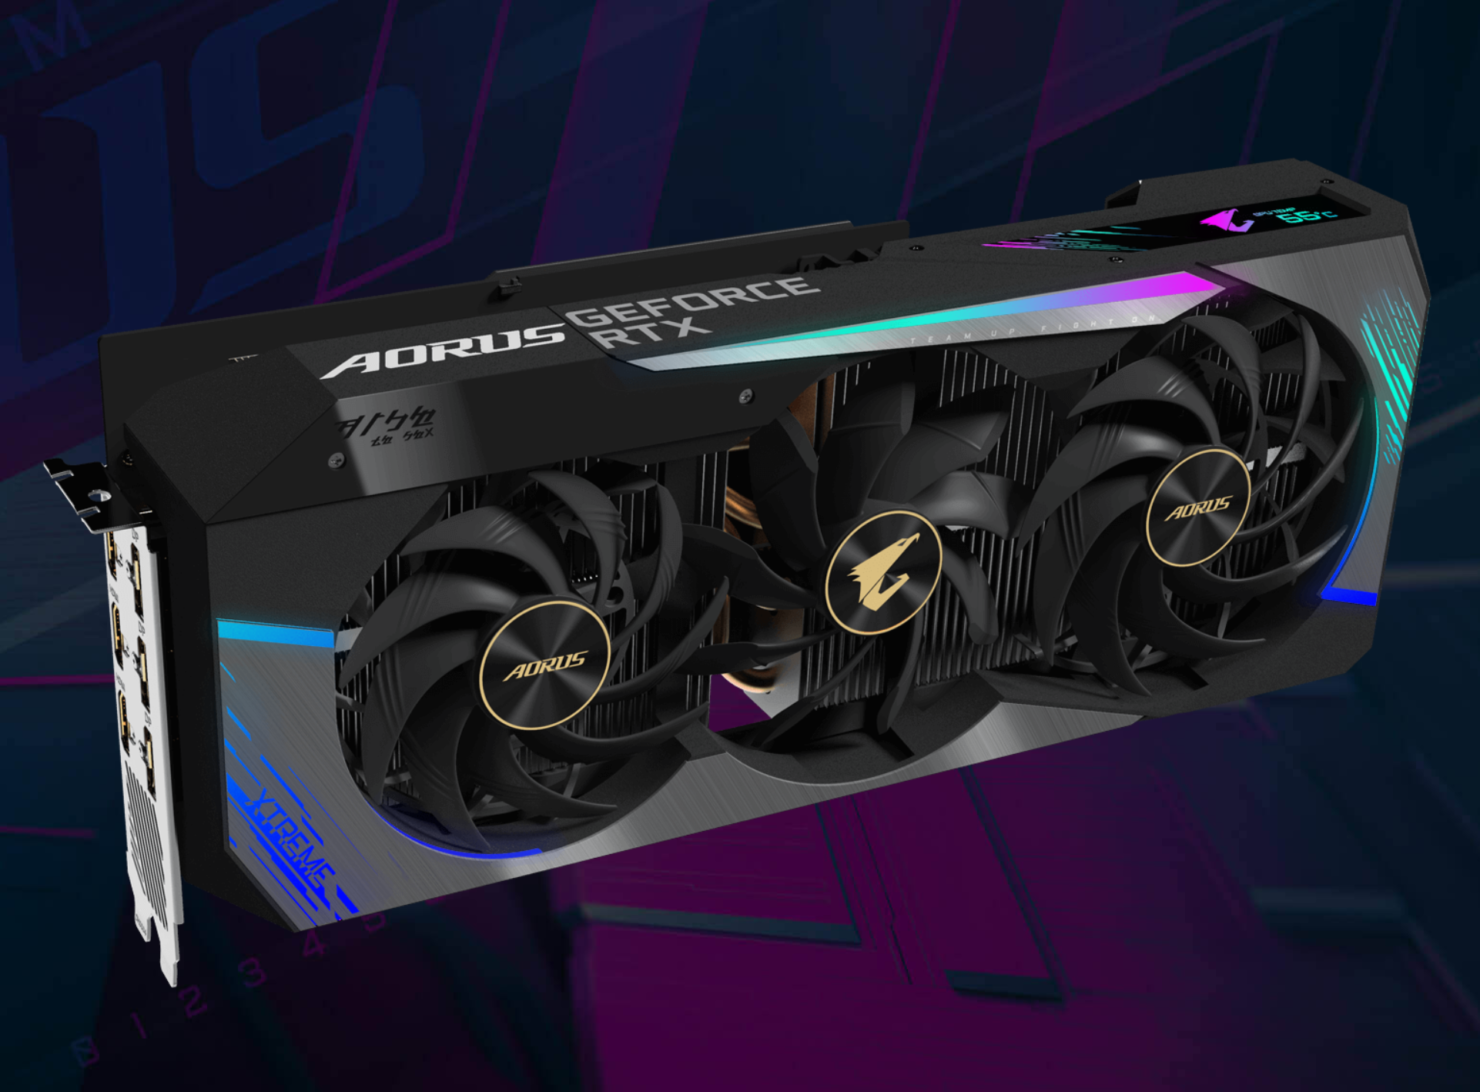 gigabyte-geforce-rtx-3080-ti-with-20gb-gddr6x-memory-pictured-&-also-listed-in-russia